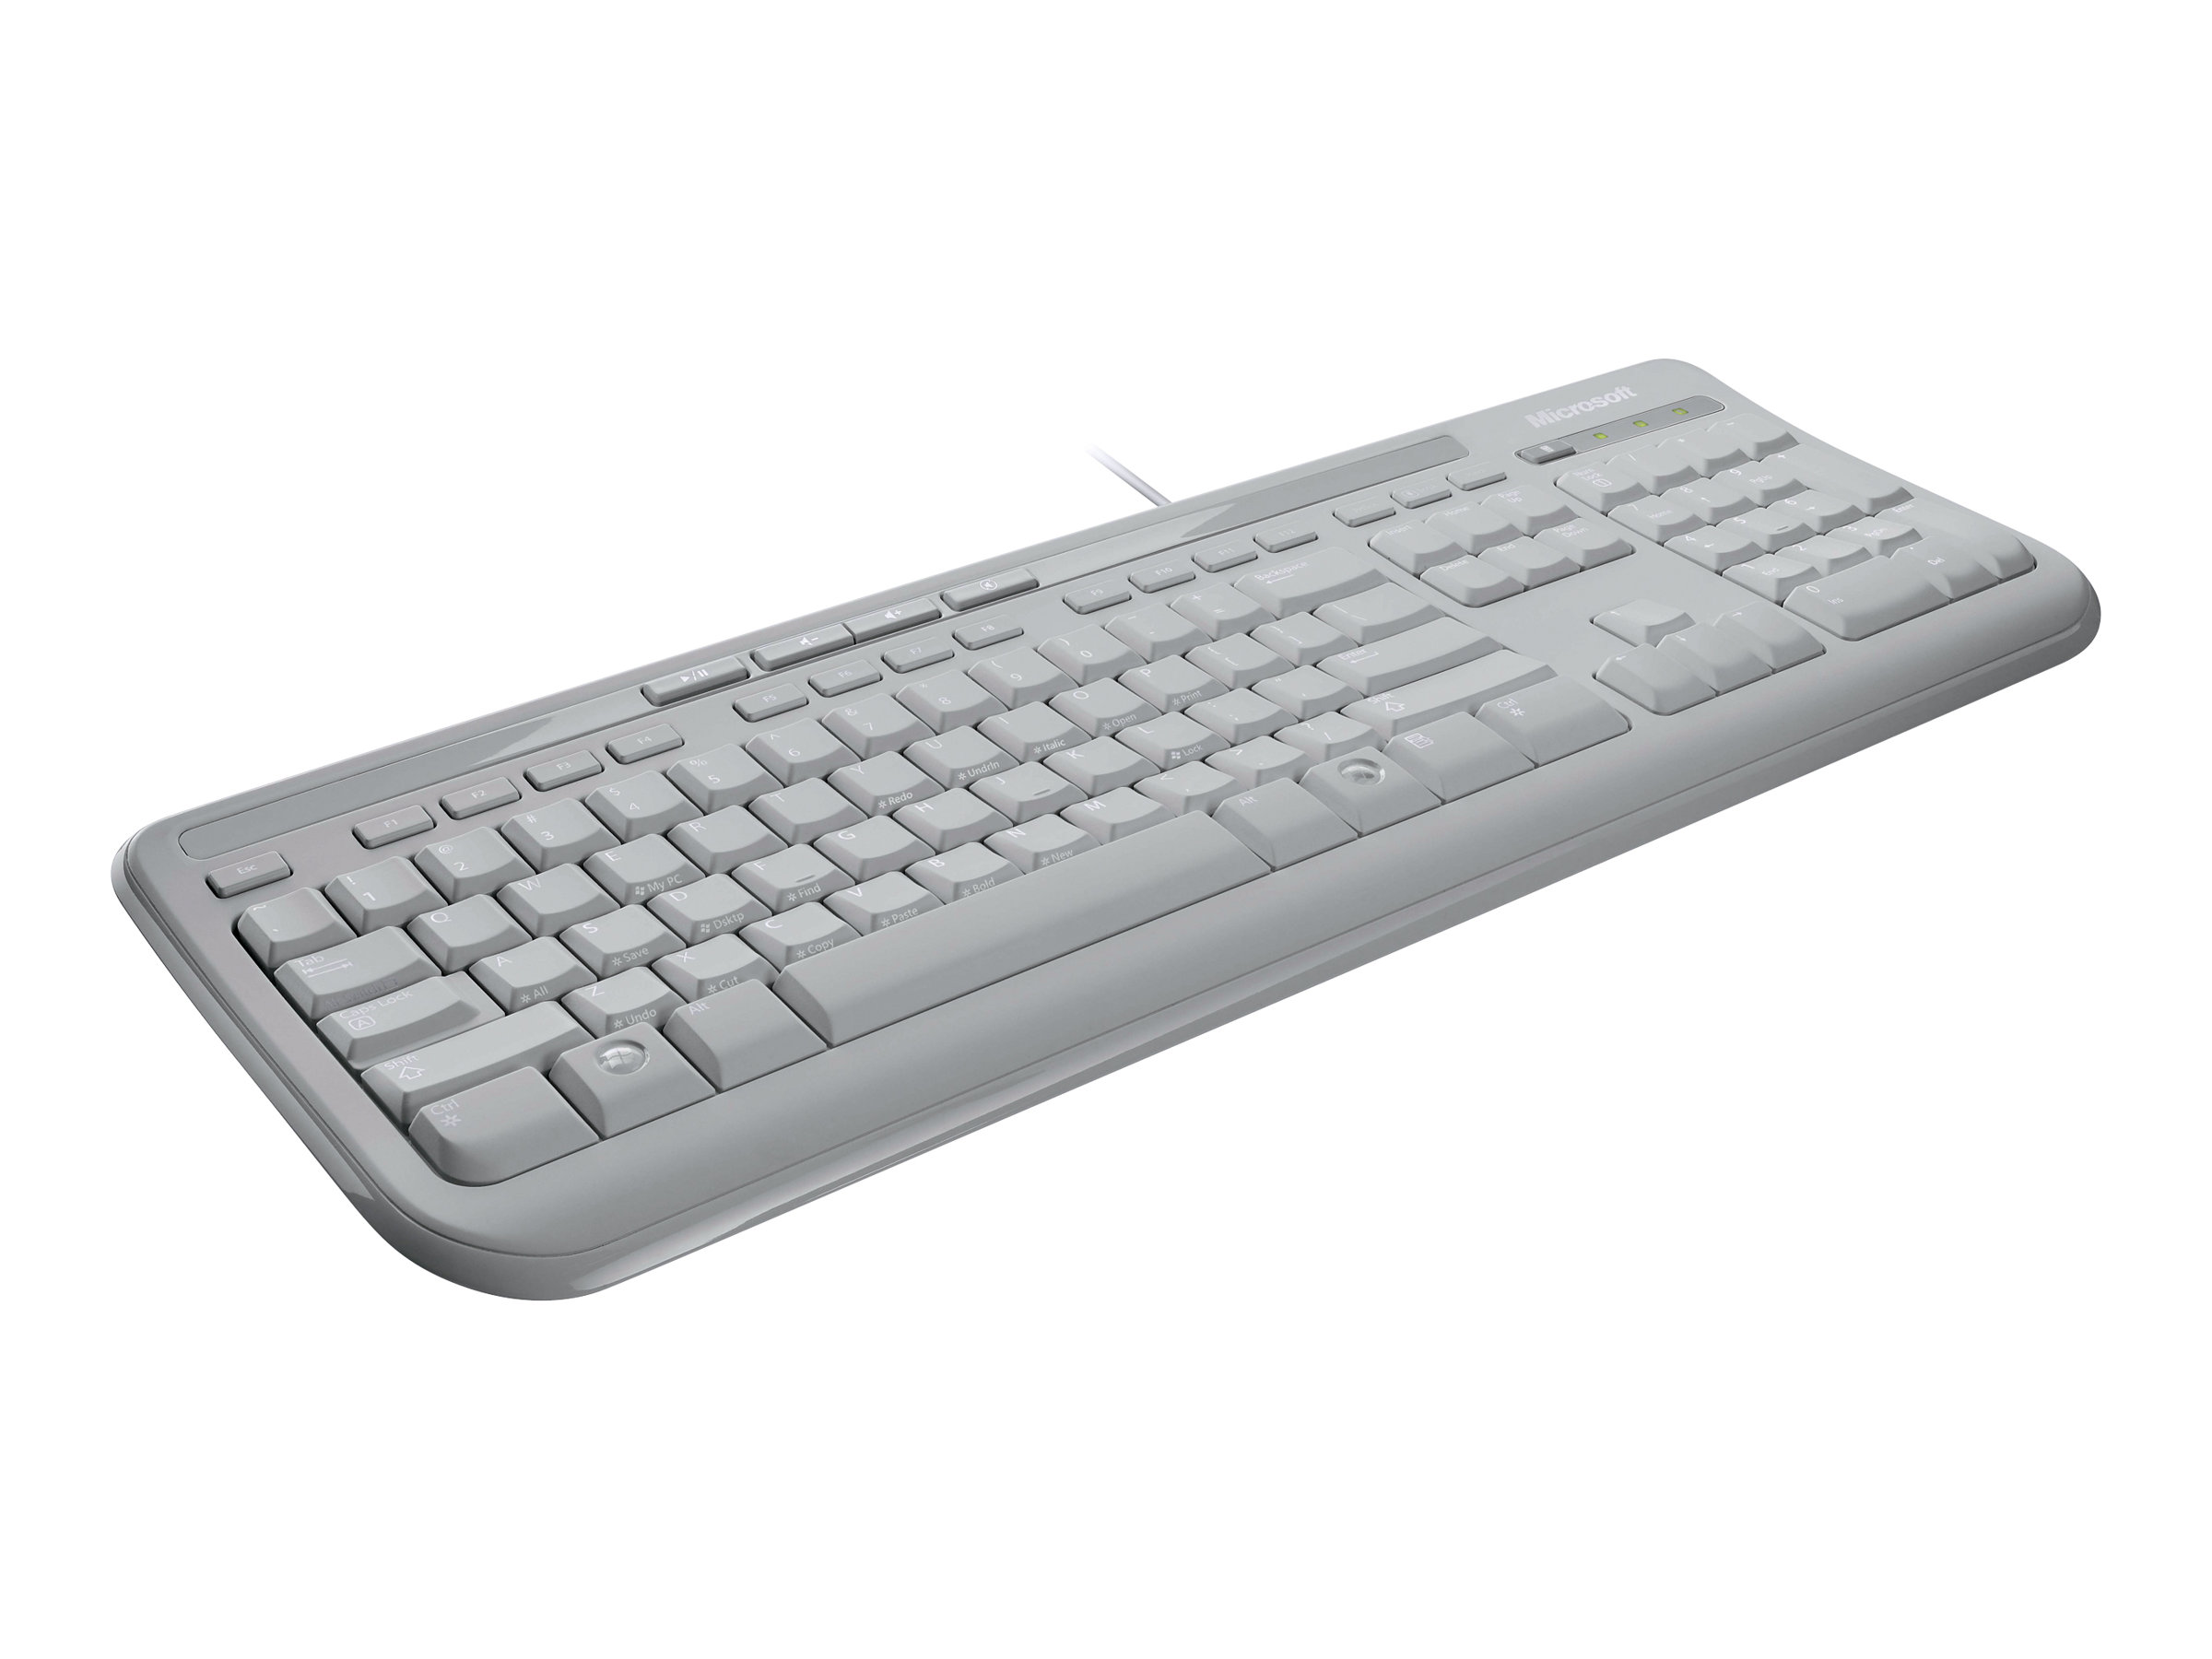 Microsoft Wired Keyboard 600 - Tastatur - USB - Deutsch - weiß